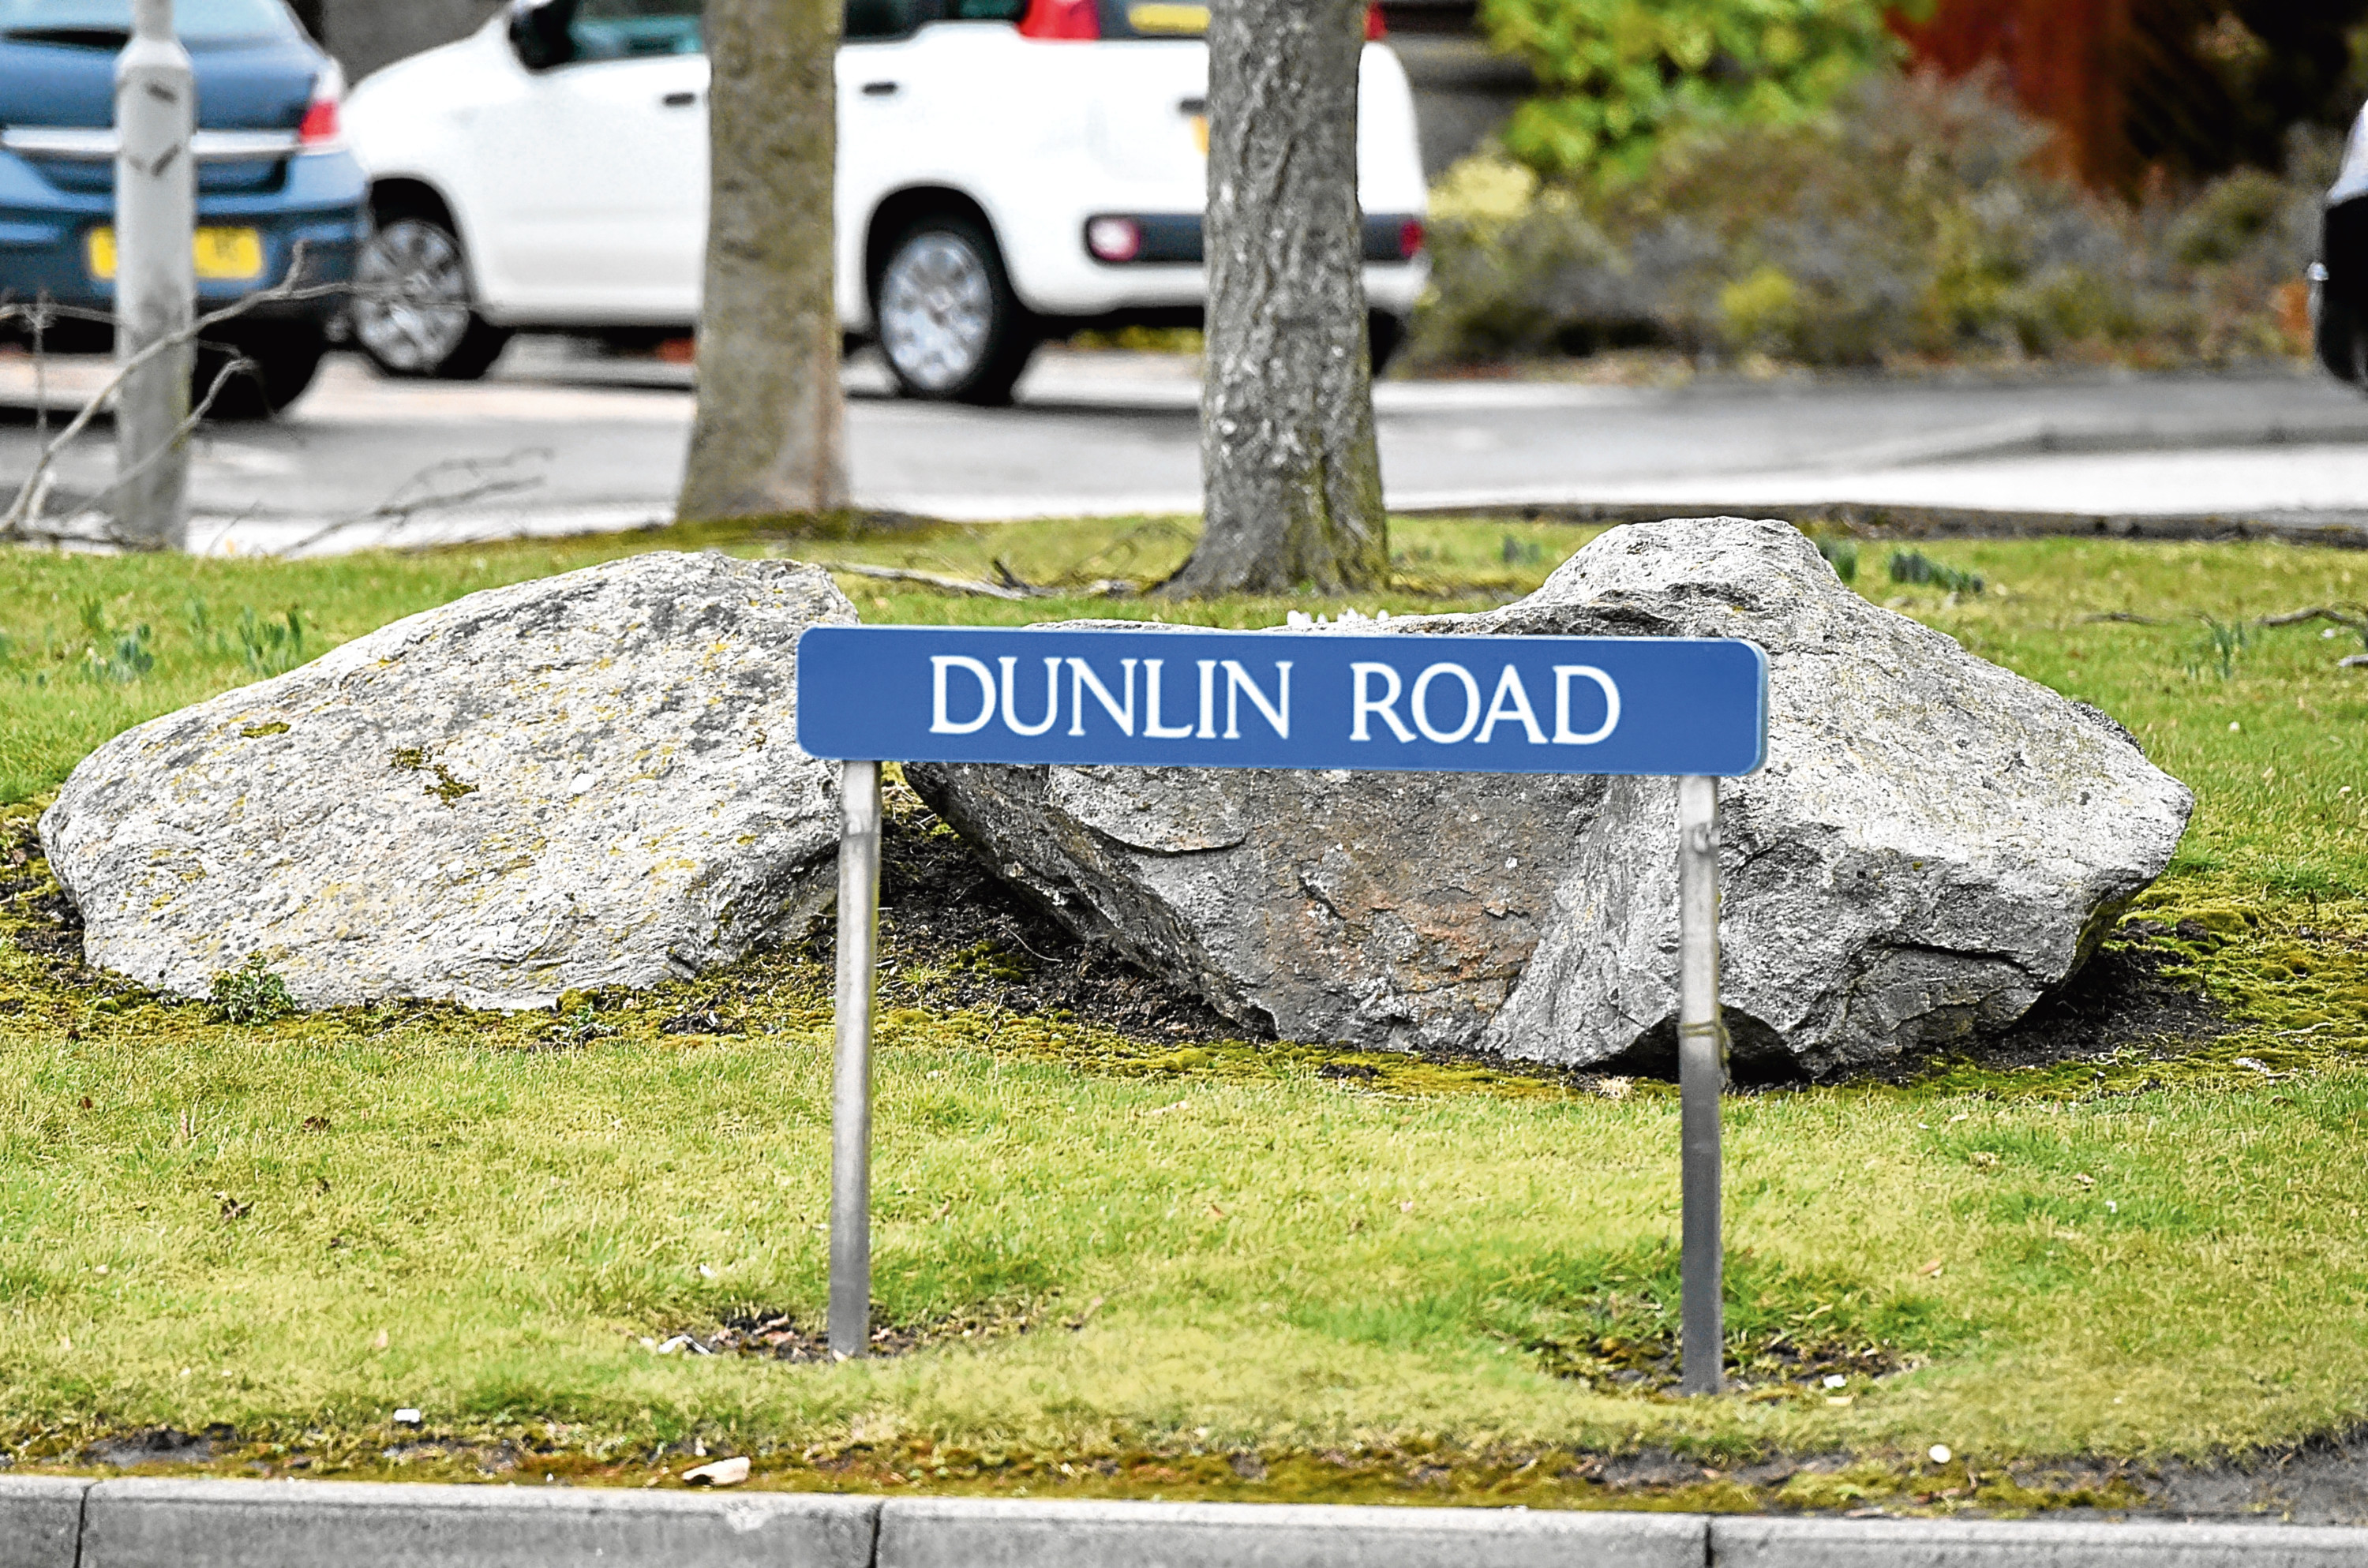 A mum has hit out after her home on Dunlin Road was ransacked during a party.